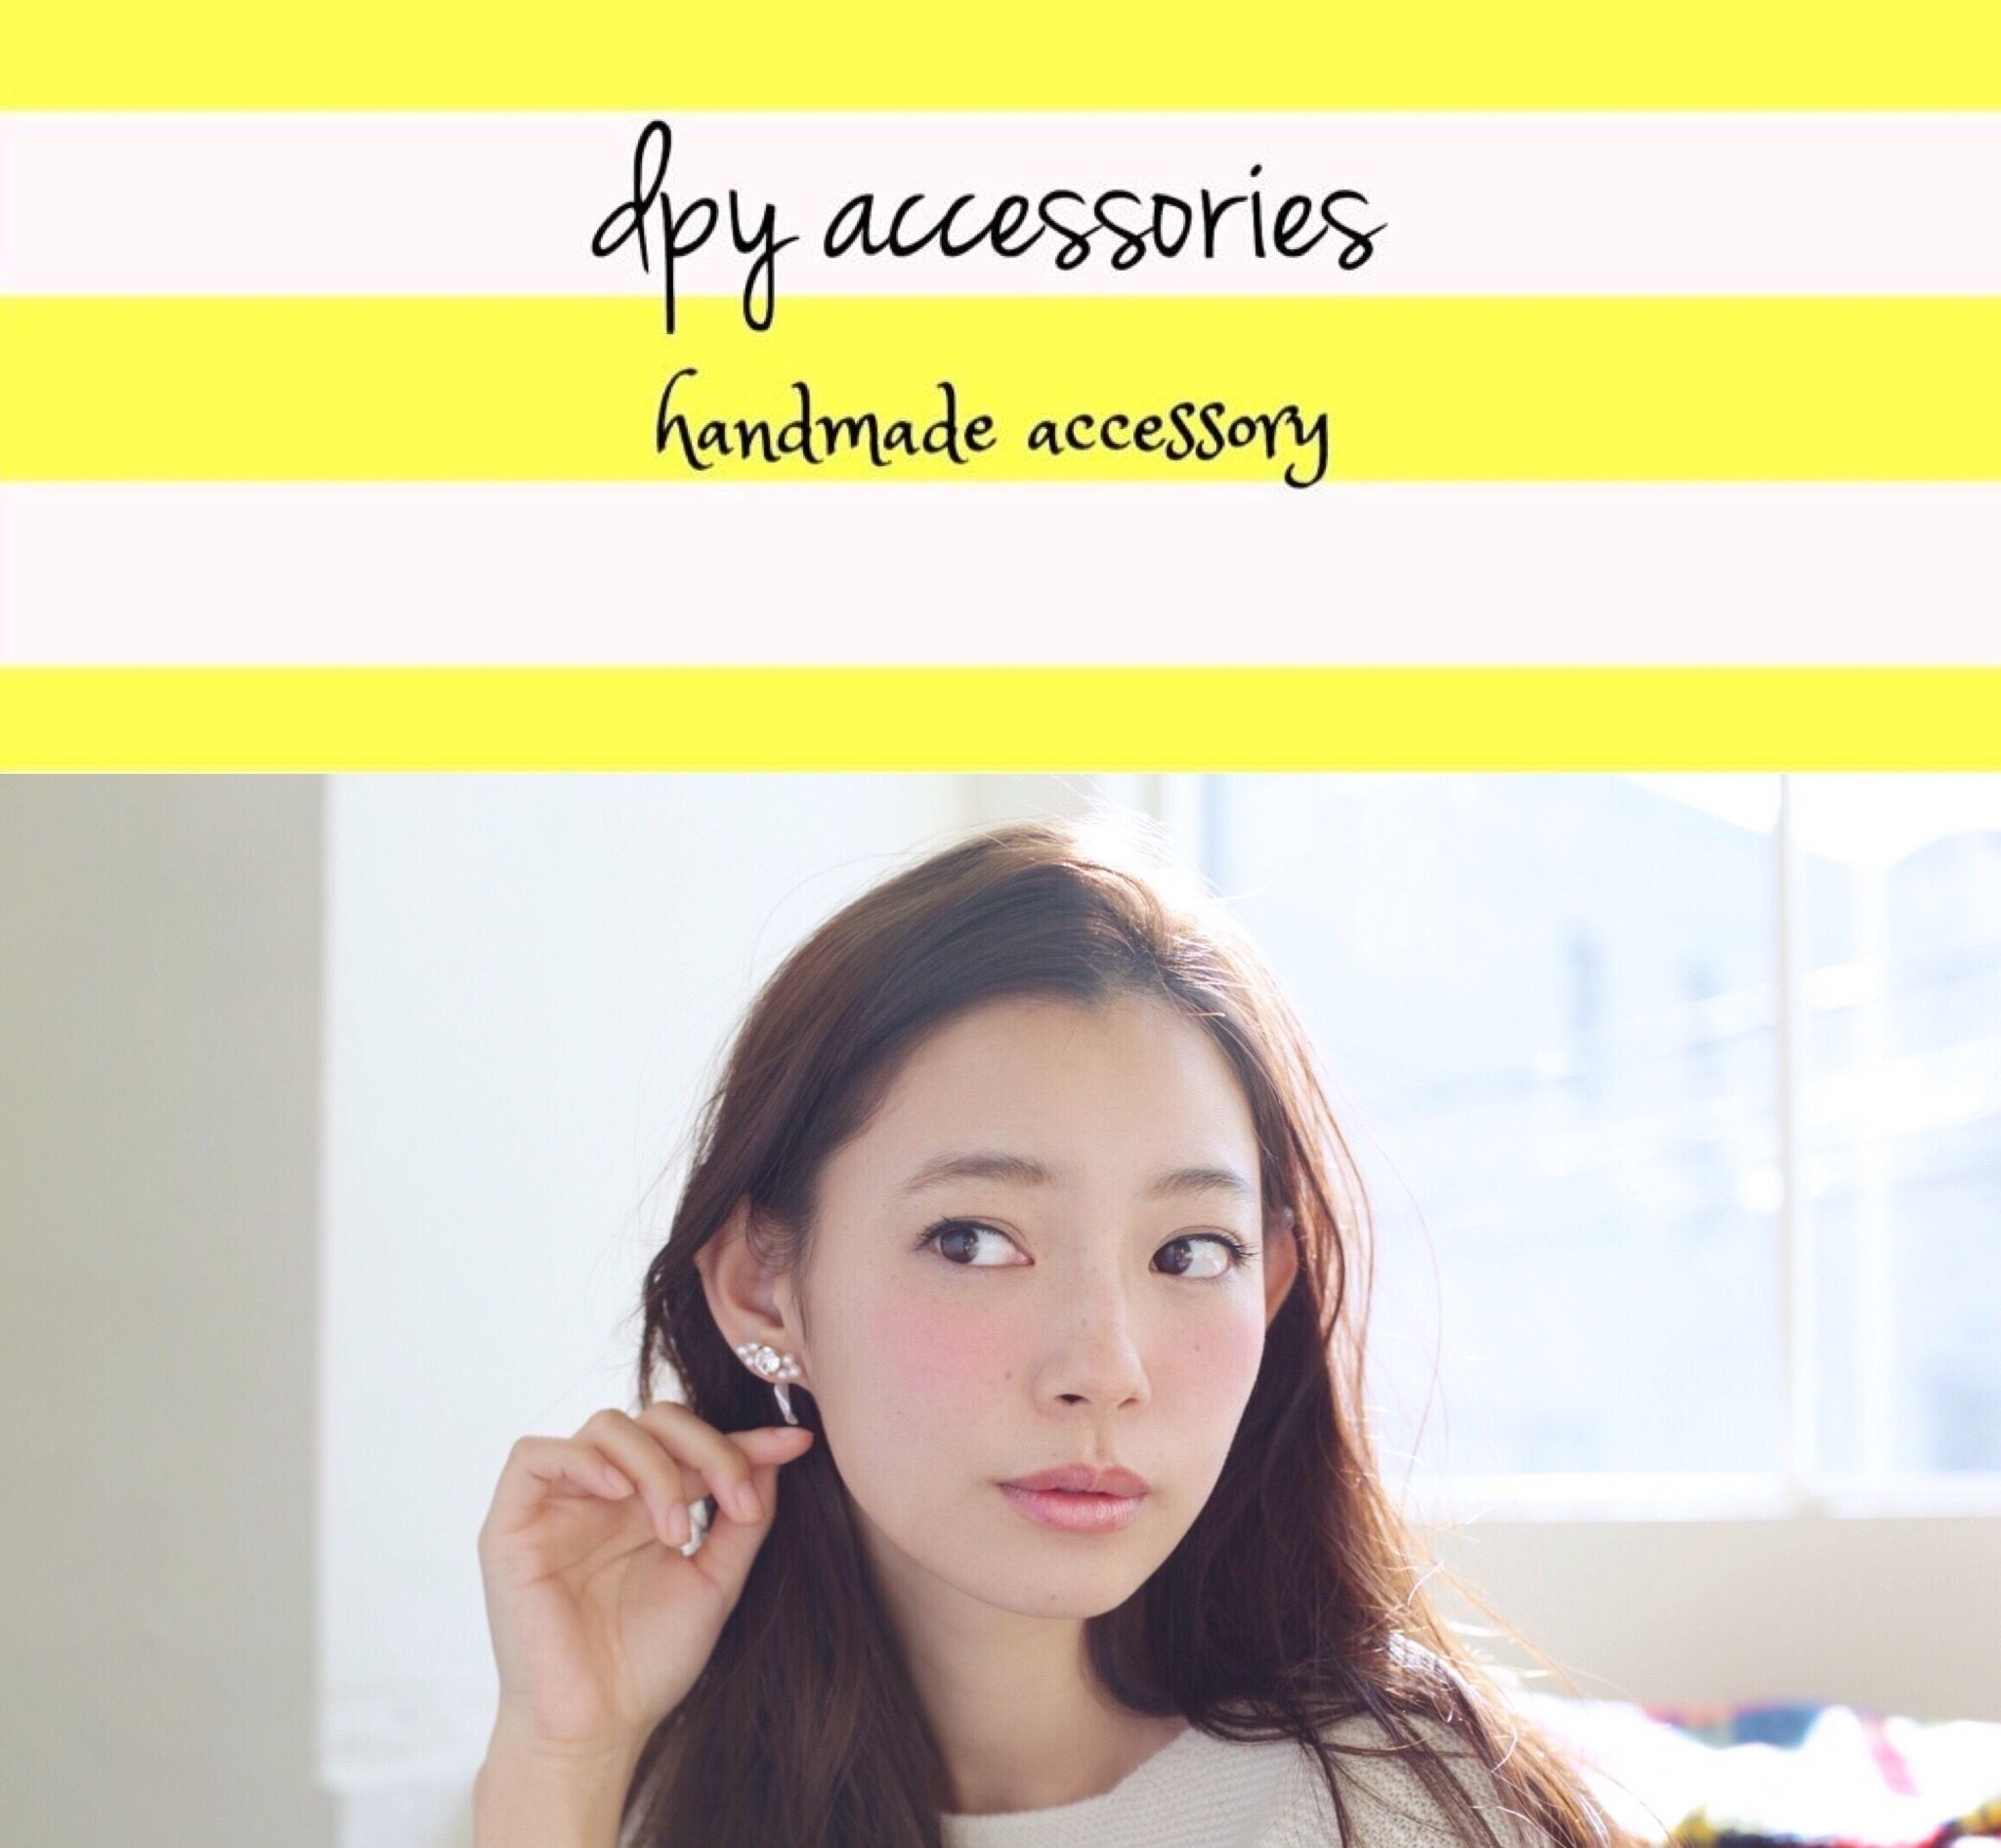 dpy accessories